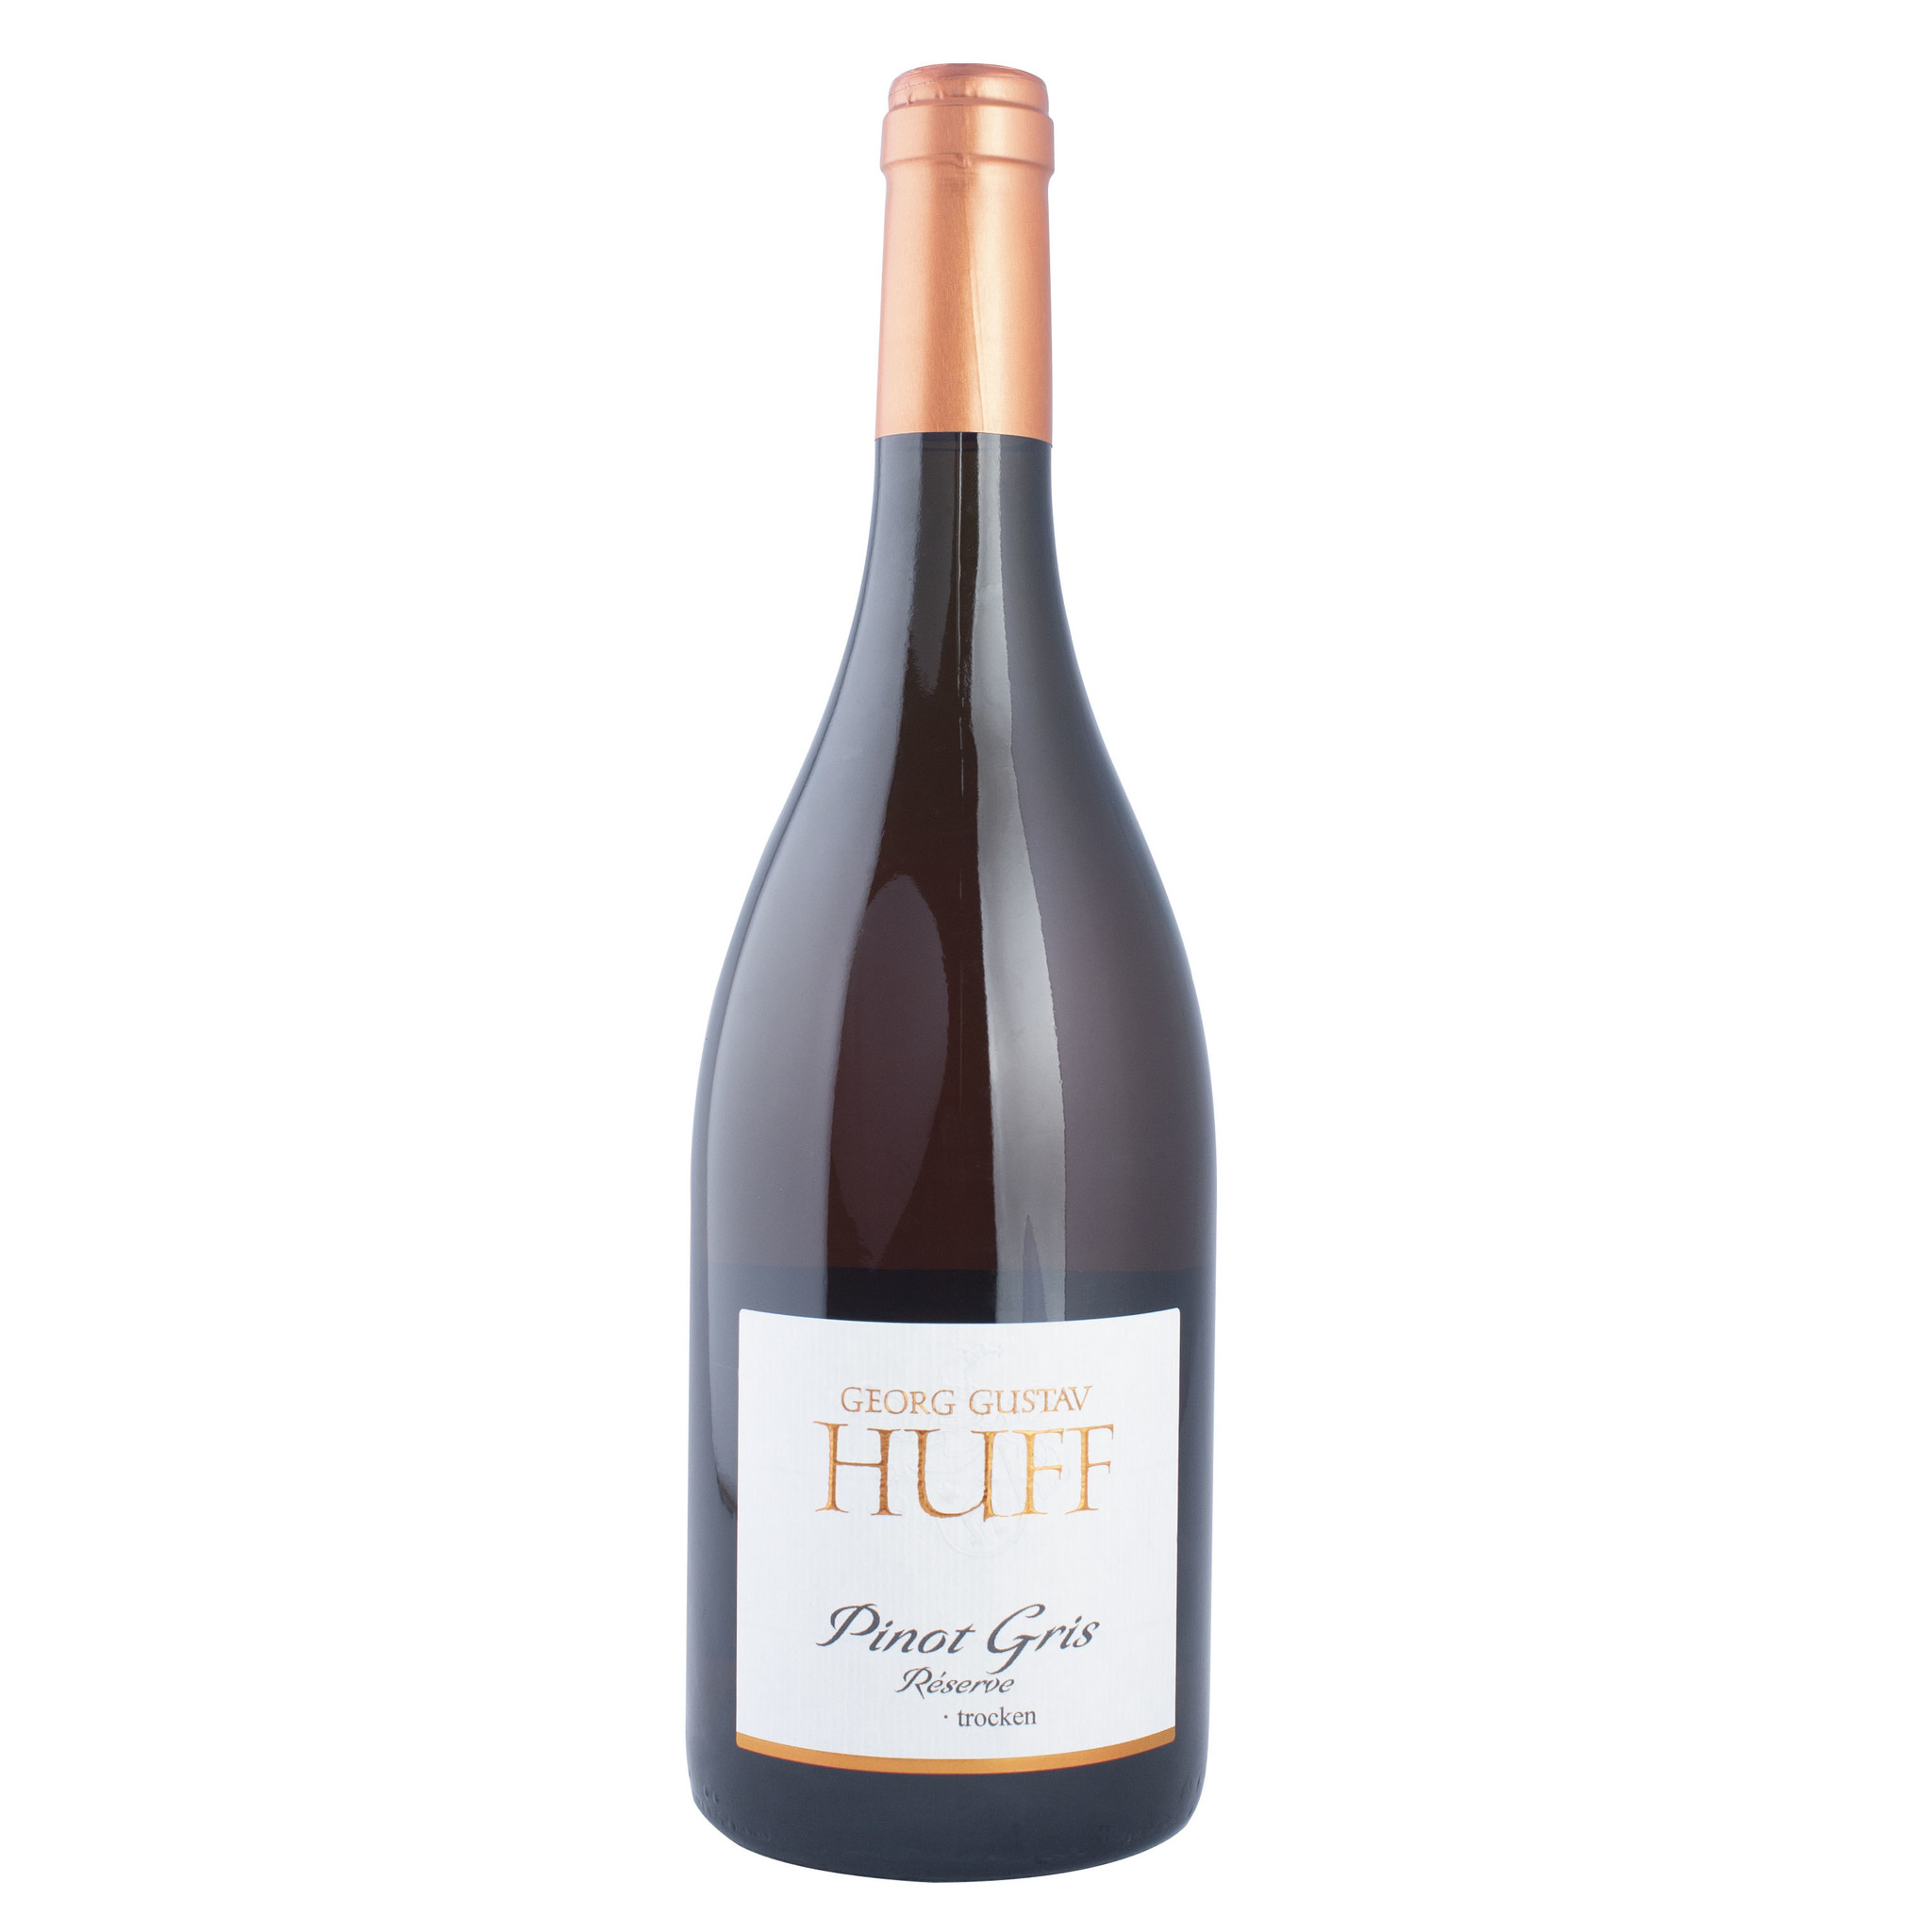 Weingut Huff Pinot Gris Reserve 2018